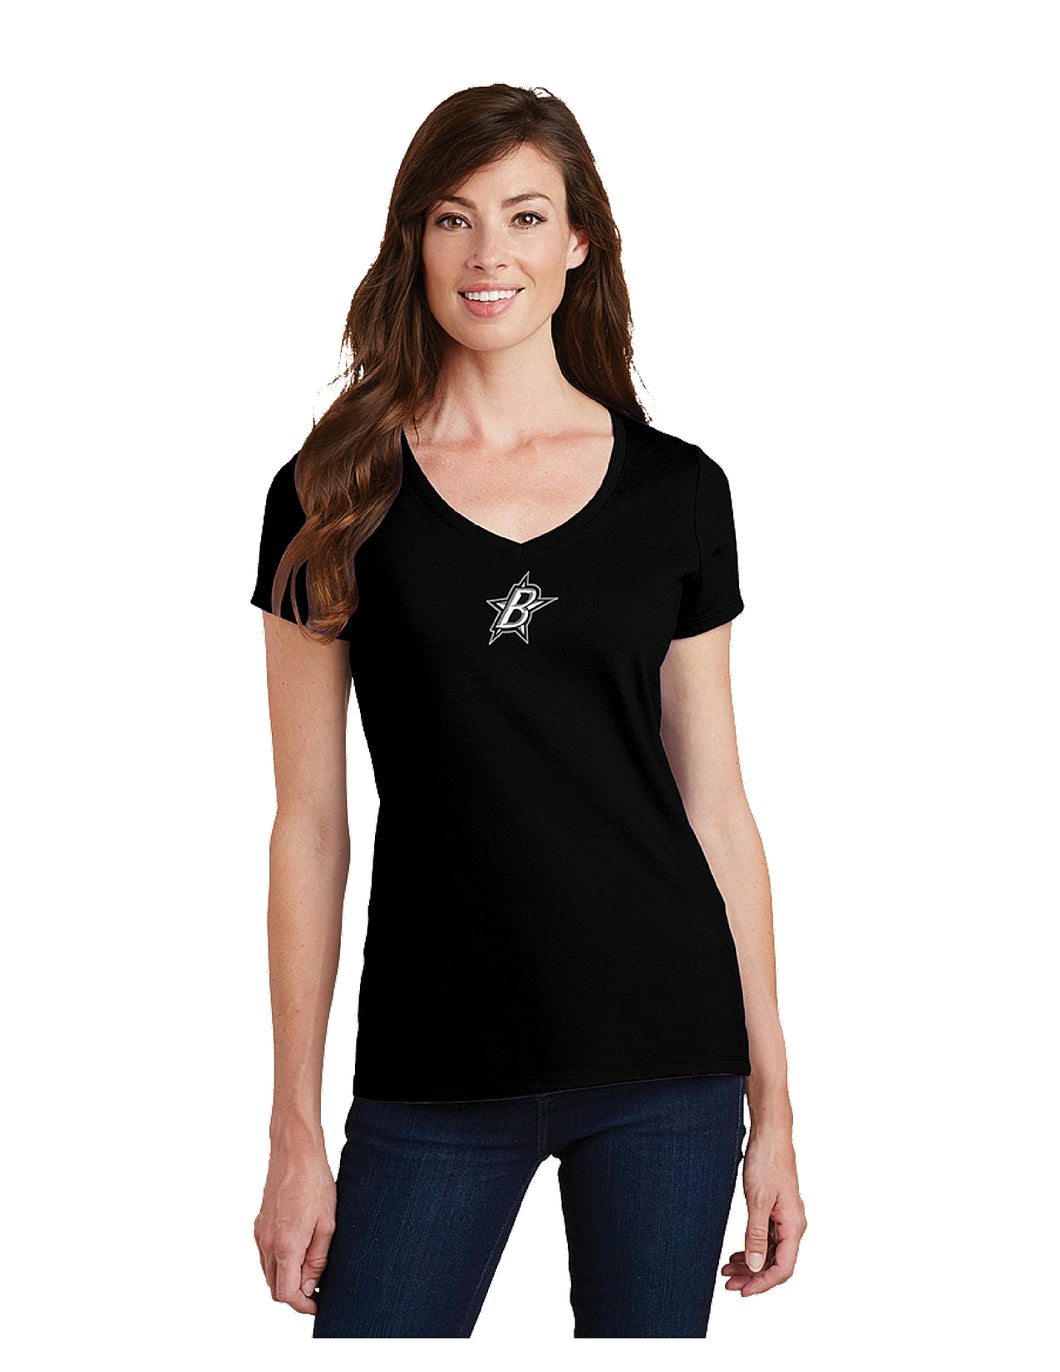 Black Stars Port & Company® Ladies Fan Favorite™ V-Neck Tee Black With Black Stars Small